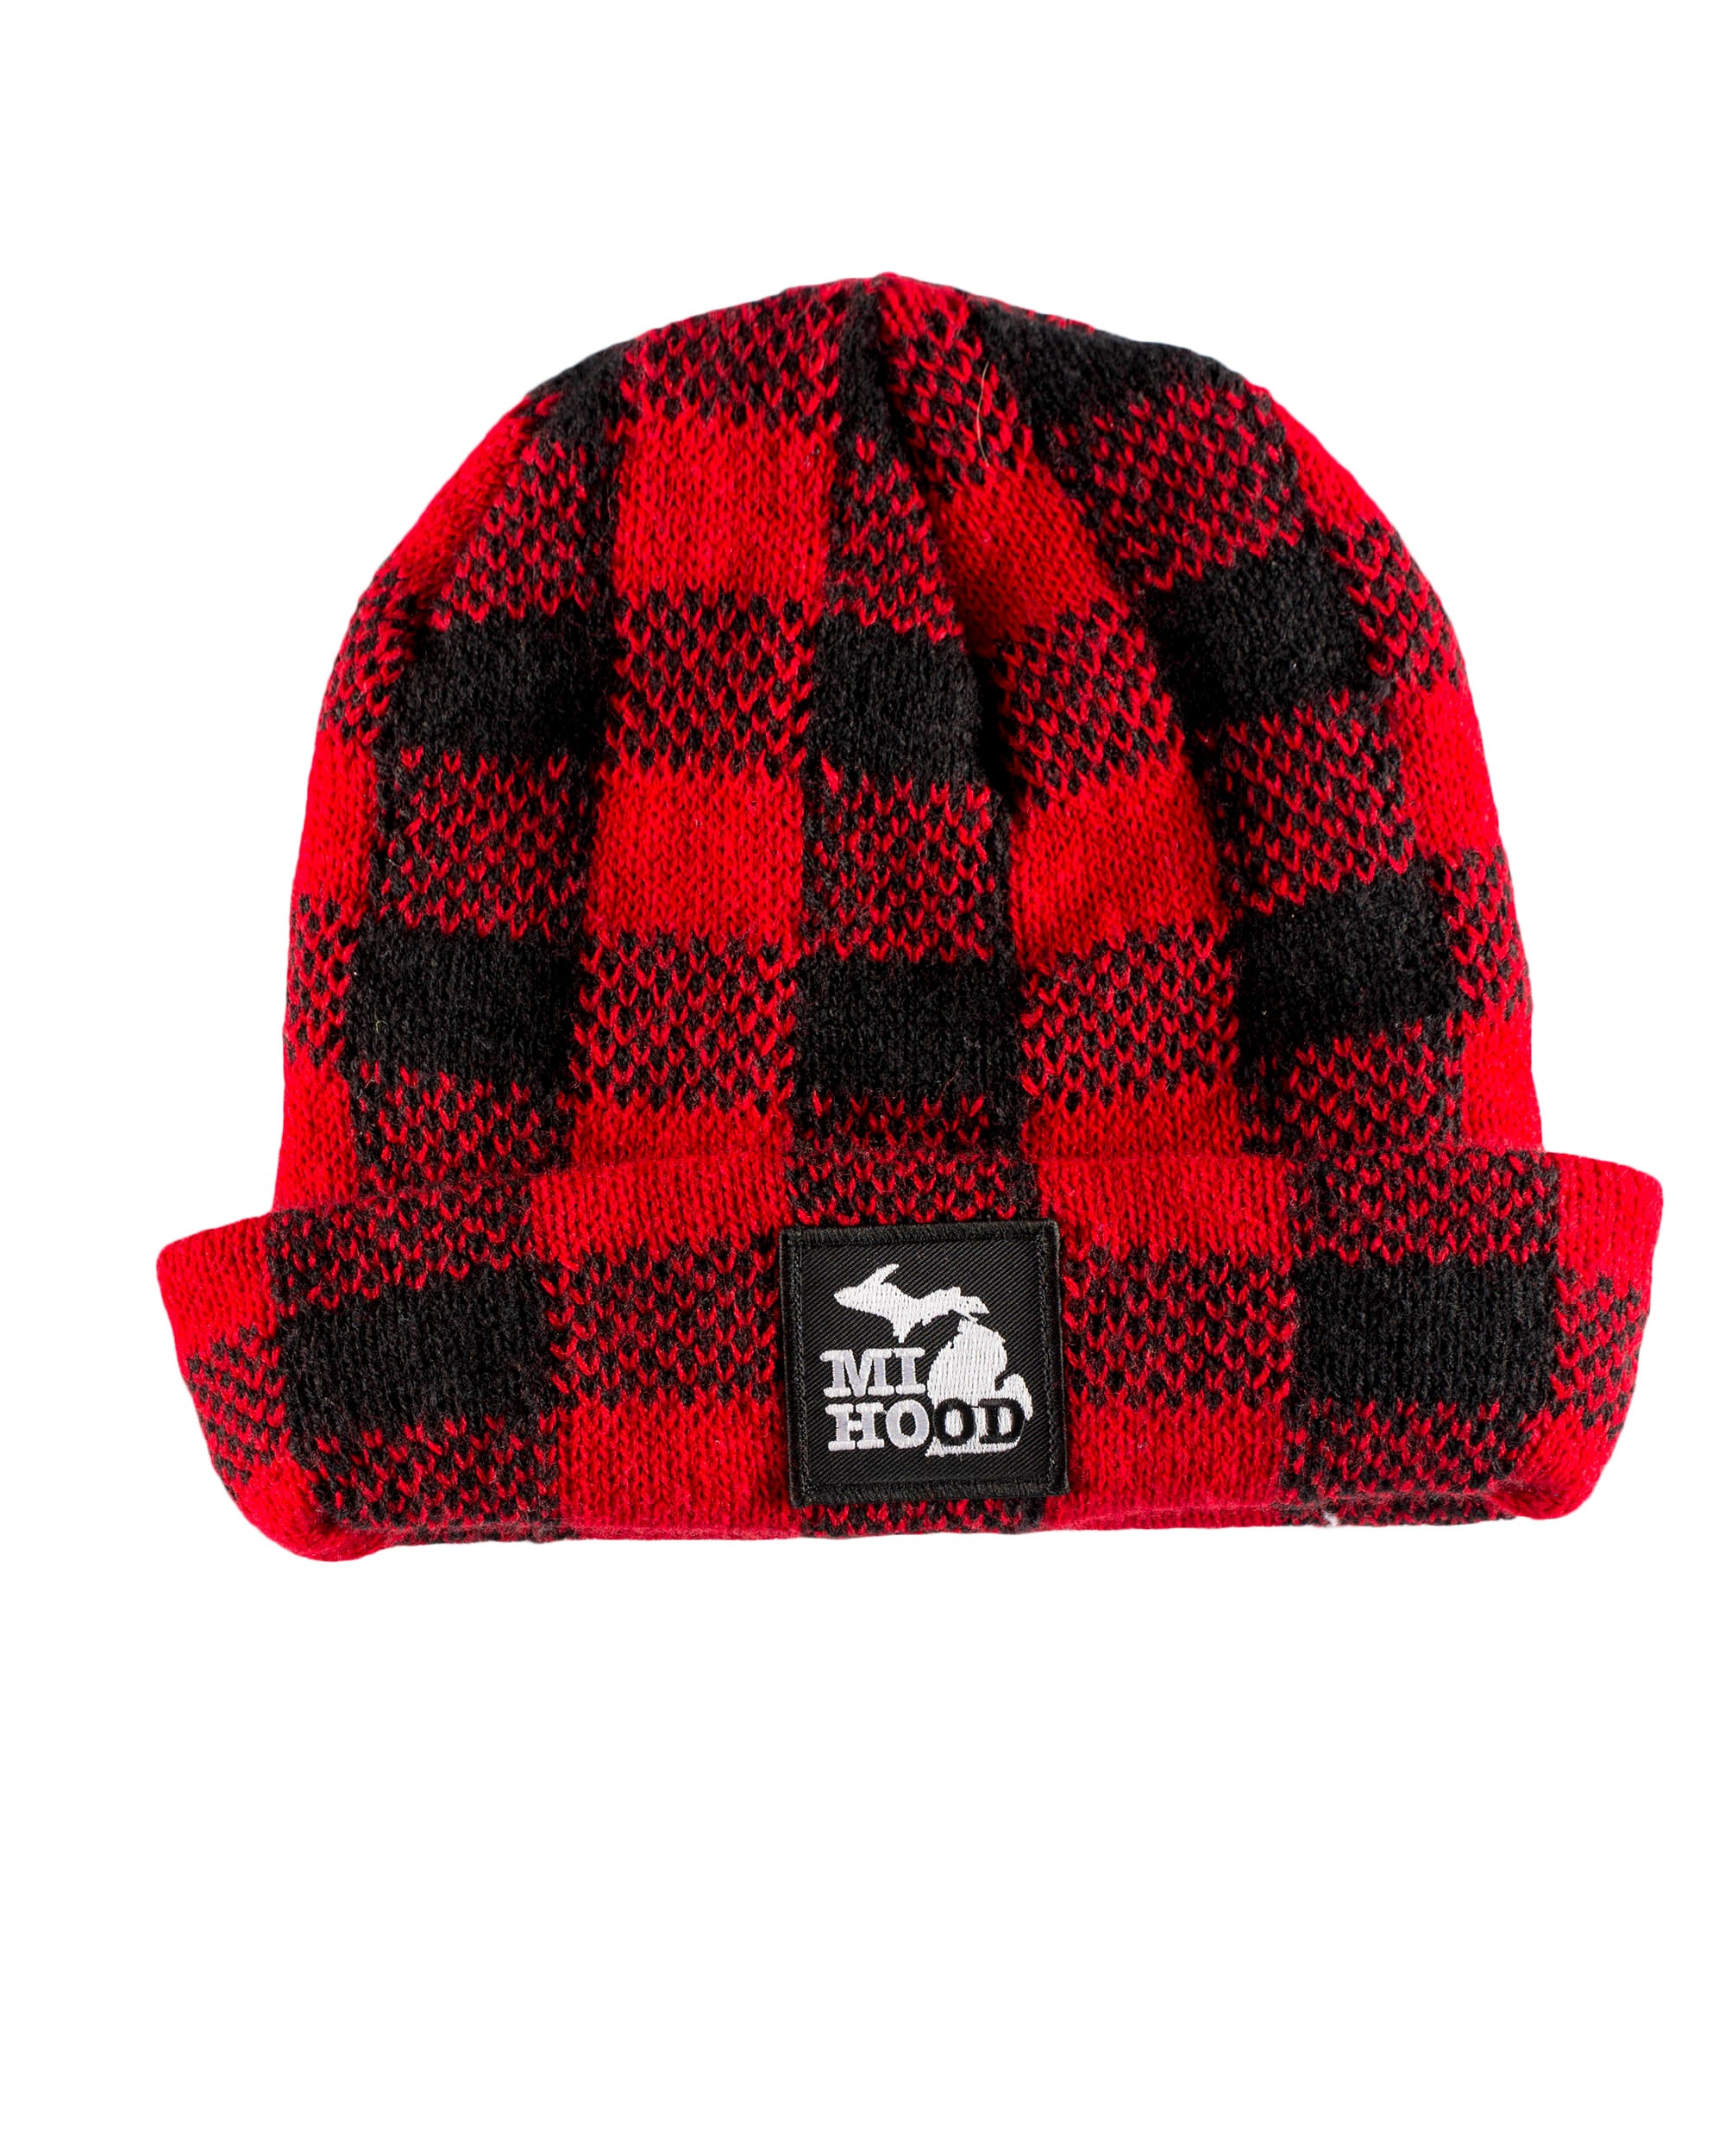 Knit Hat - Buffalo Plaid Flannel - MI Hood - The Great Lakes State 1b73131b47b